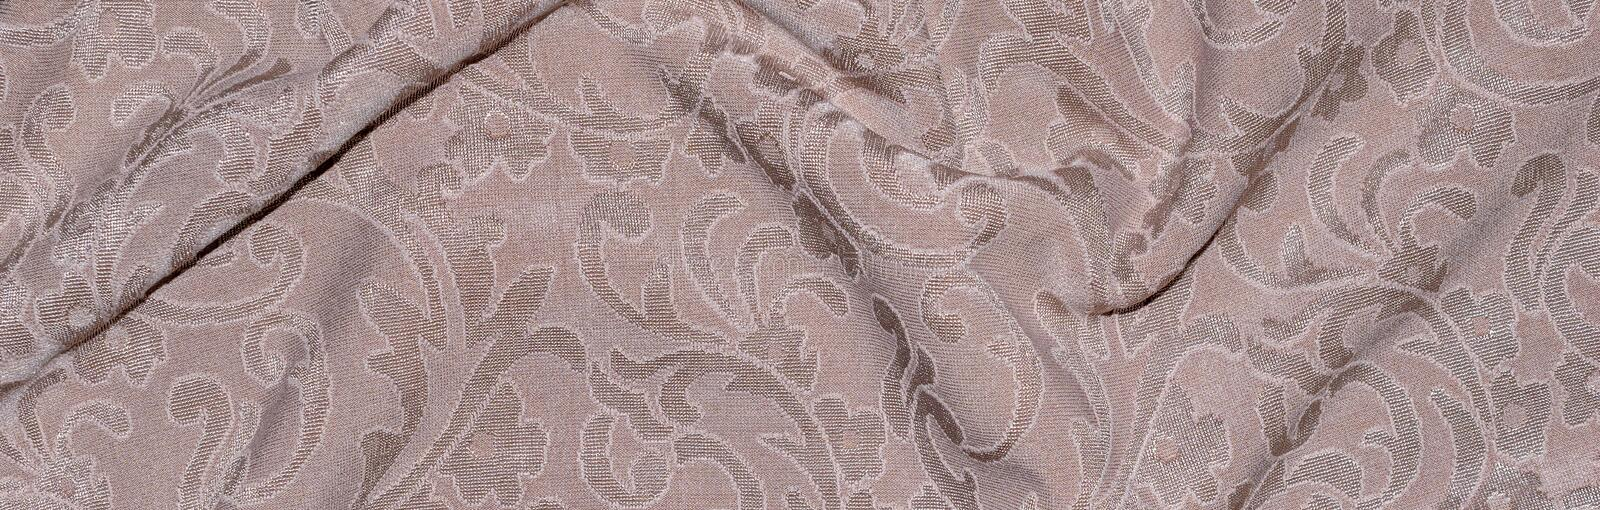 Beautiful fabric texture or background royalty free stock image